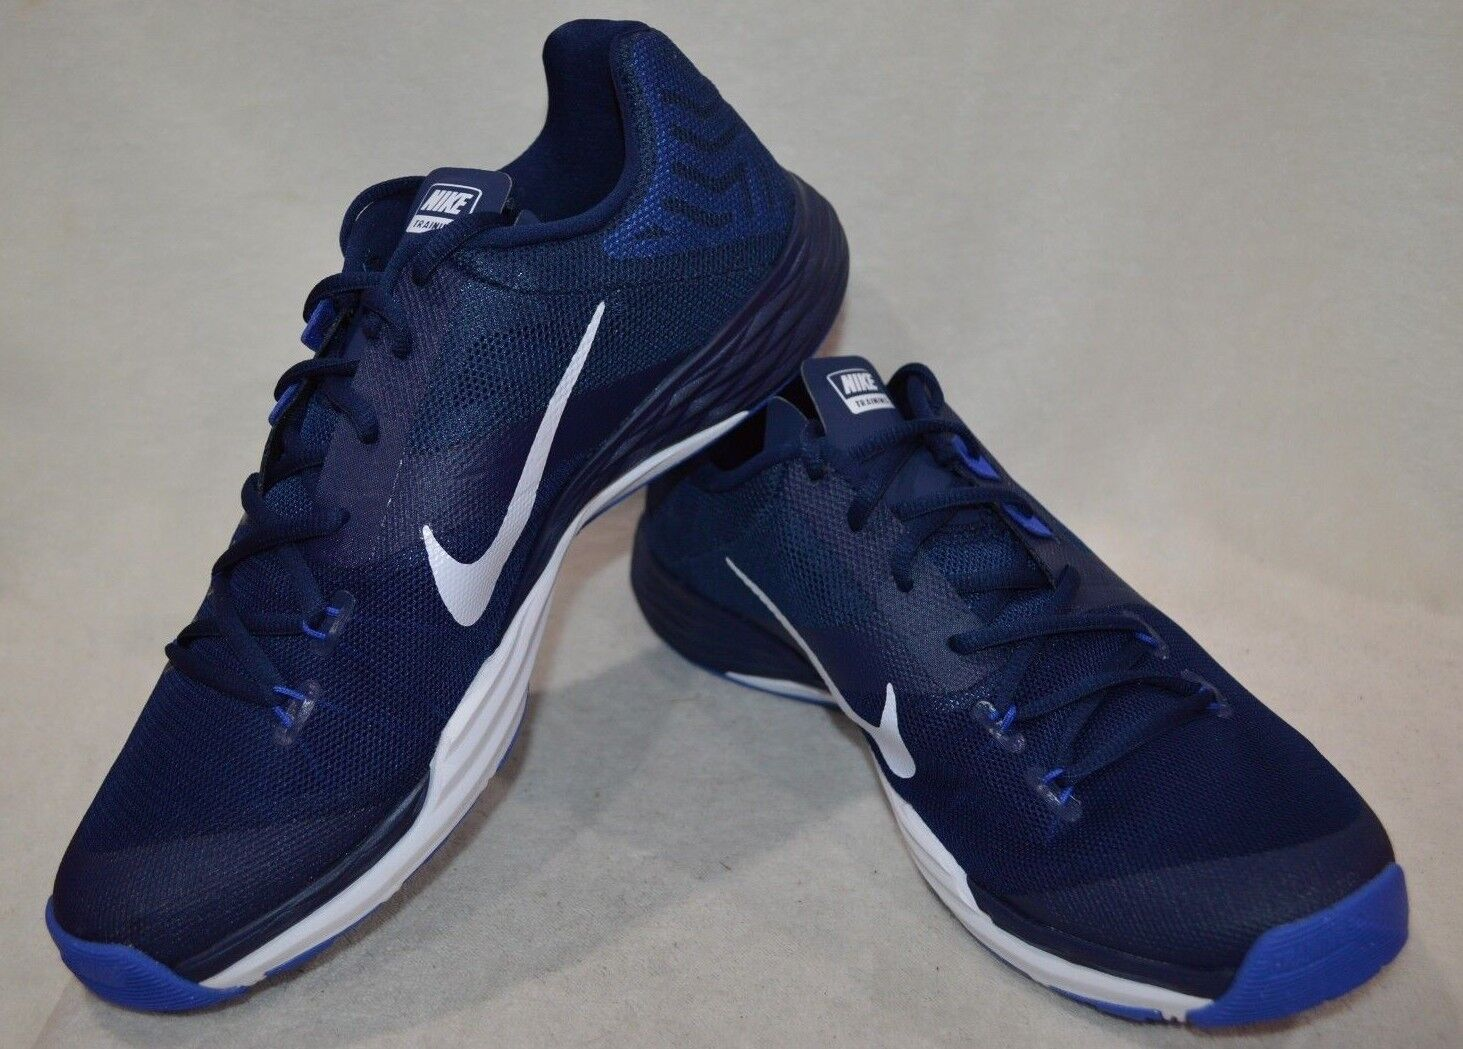 Nike Train Prime Iron chaussures DF Bleu/blanc homme Training chaussures Iron - Assorted ddadf7